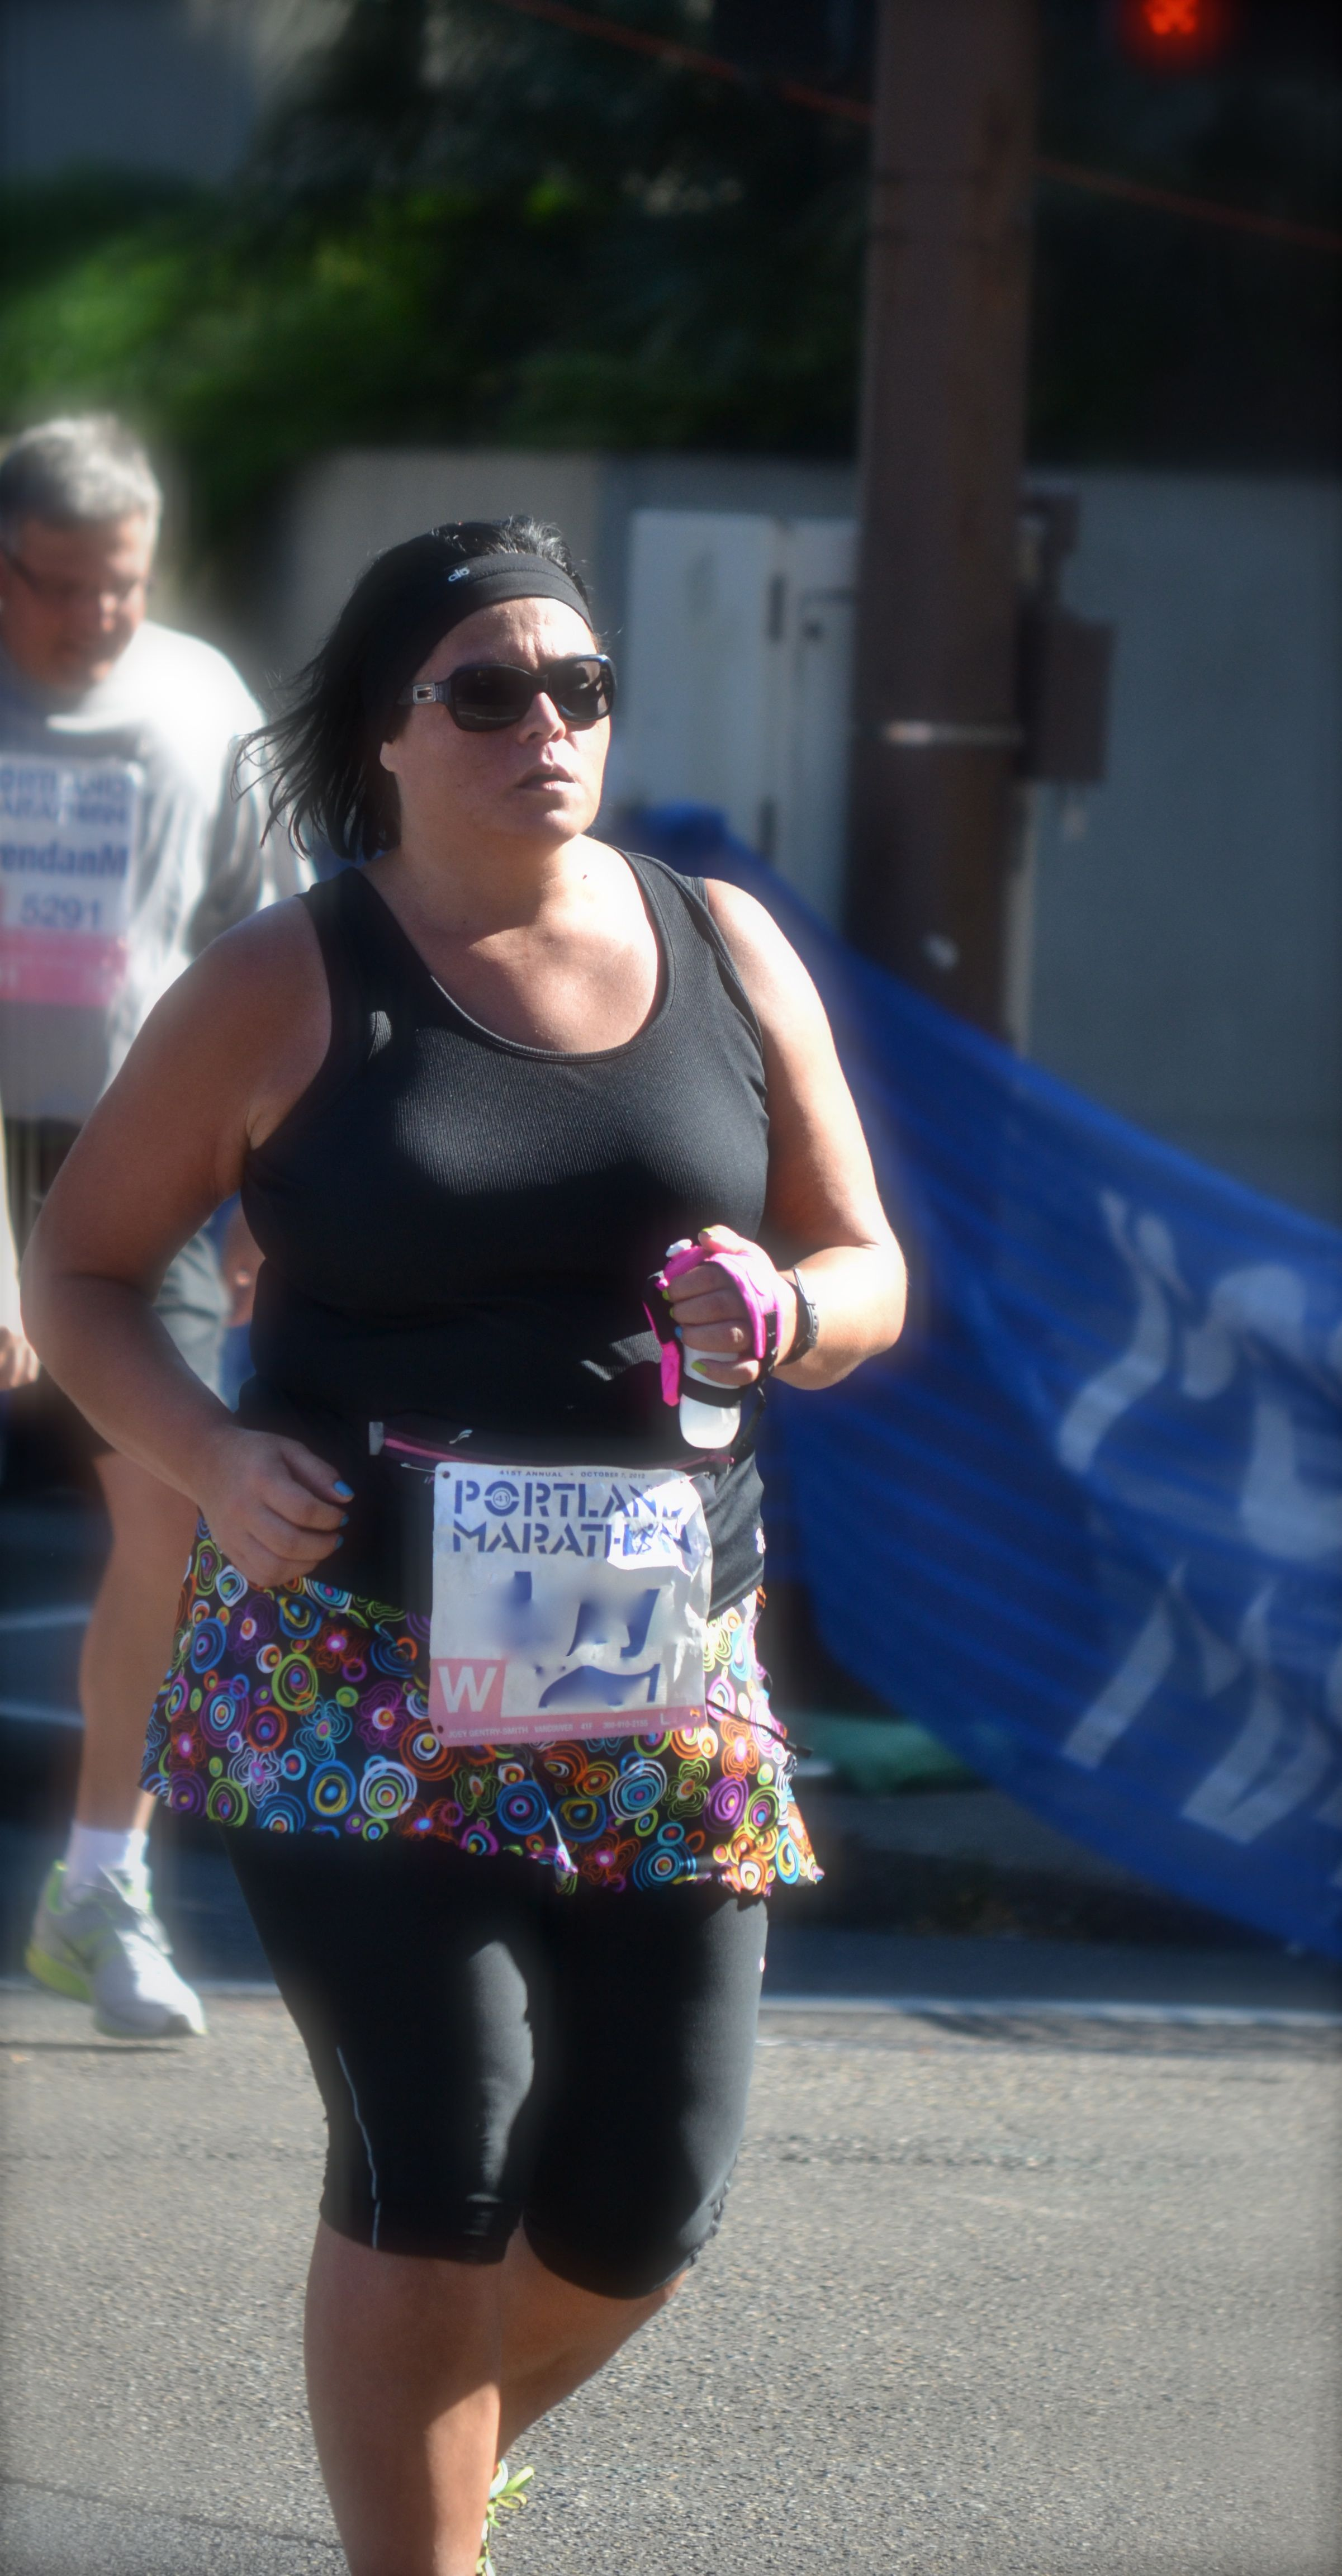 Here I am, wearing my Sweet Spot Skirt at the Portland Marathon last fall.  26 miles down, just that last .02 to go!